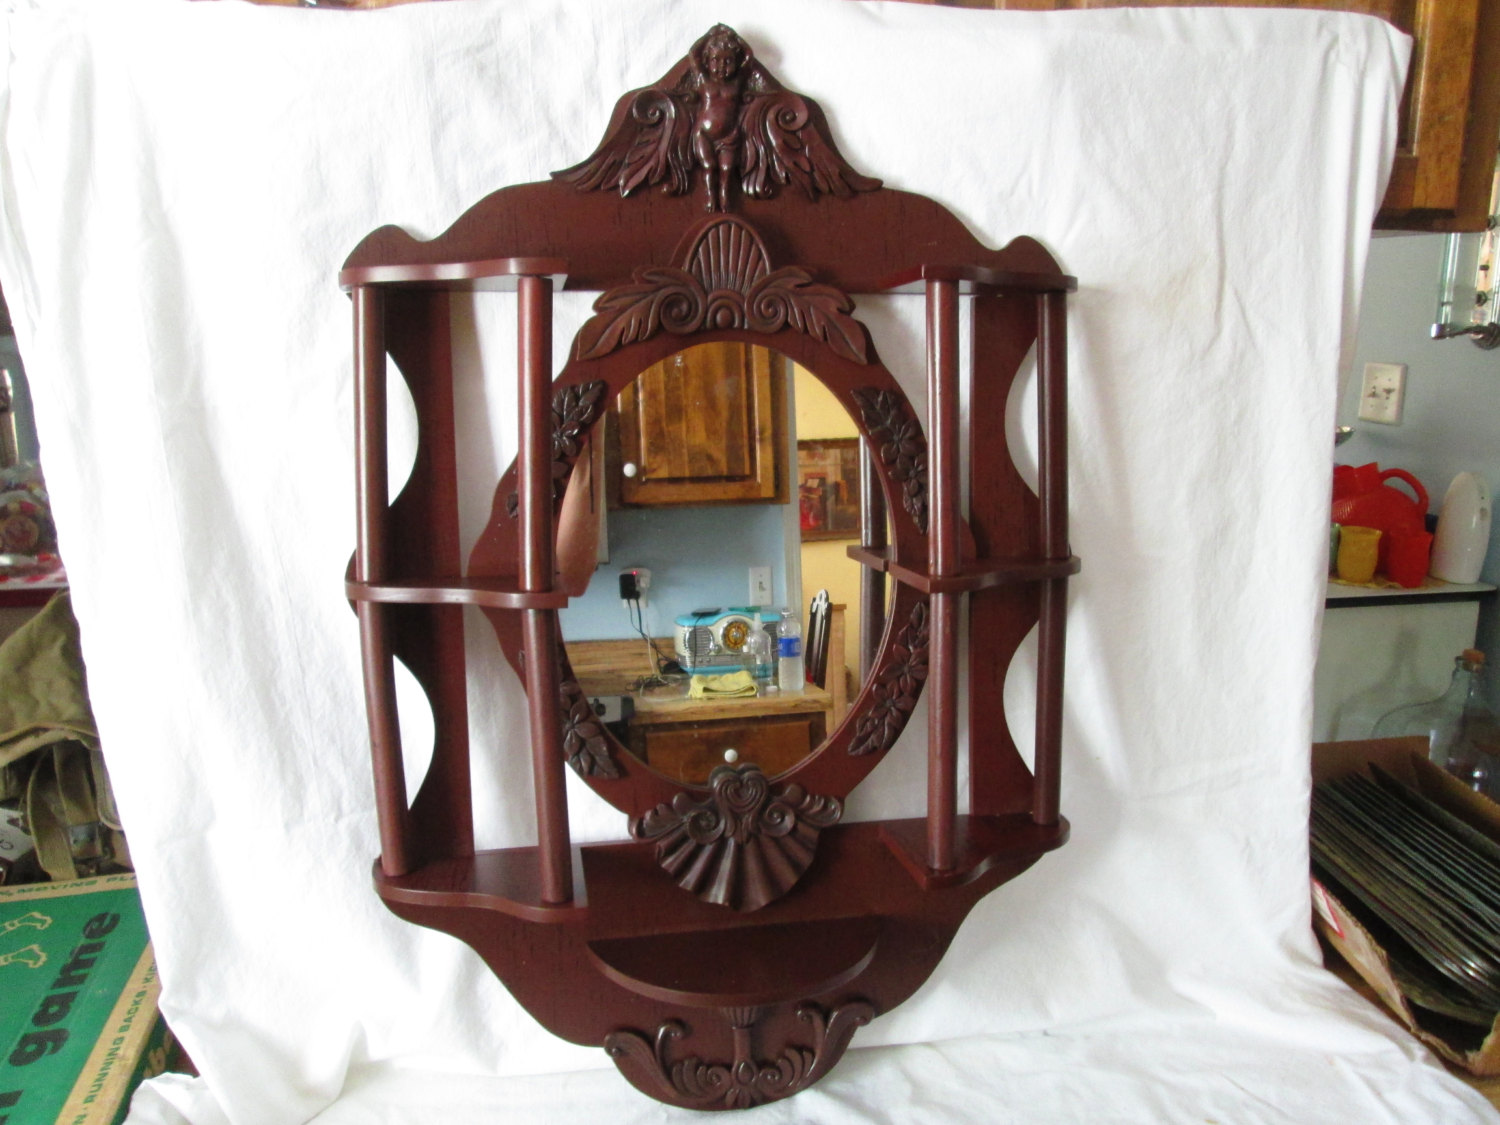 Vintage Mid Century Wall Mirror With Shelves And Columns Cherub At